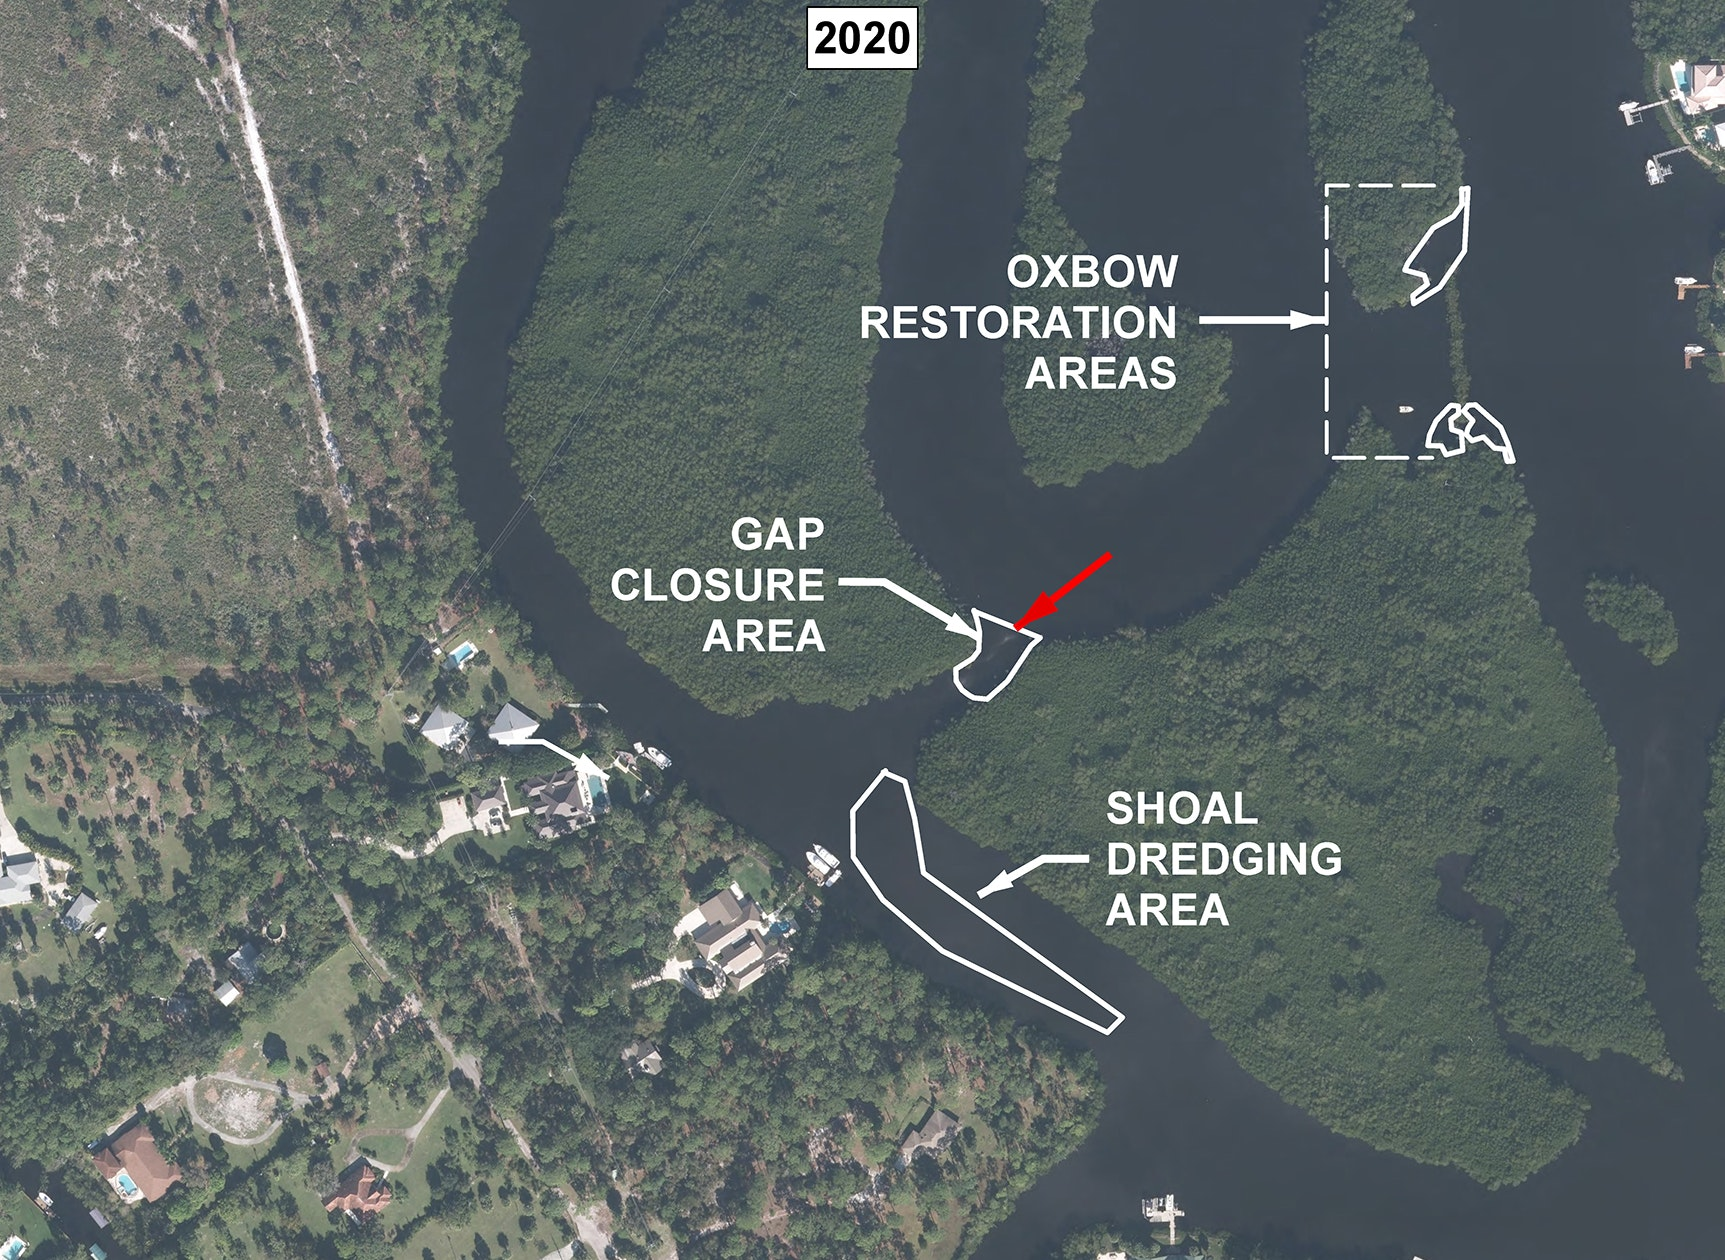 aerial view of meandering river bends labeled with areas including shoal dredging area, gap closure area, and oxbow restoration area